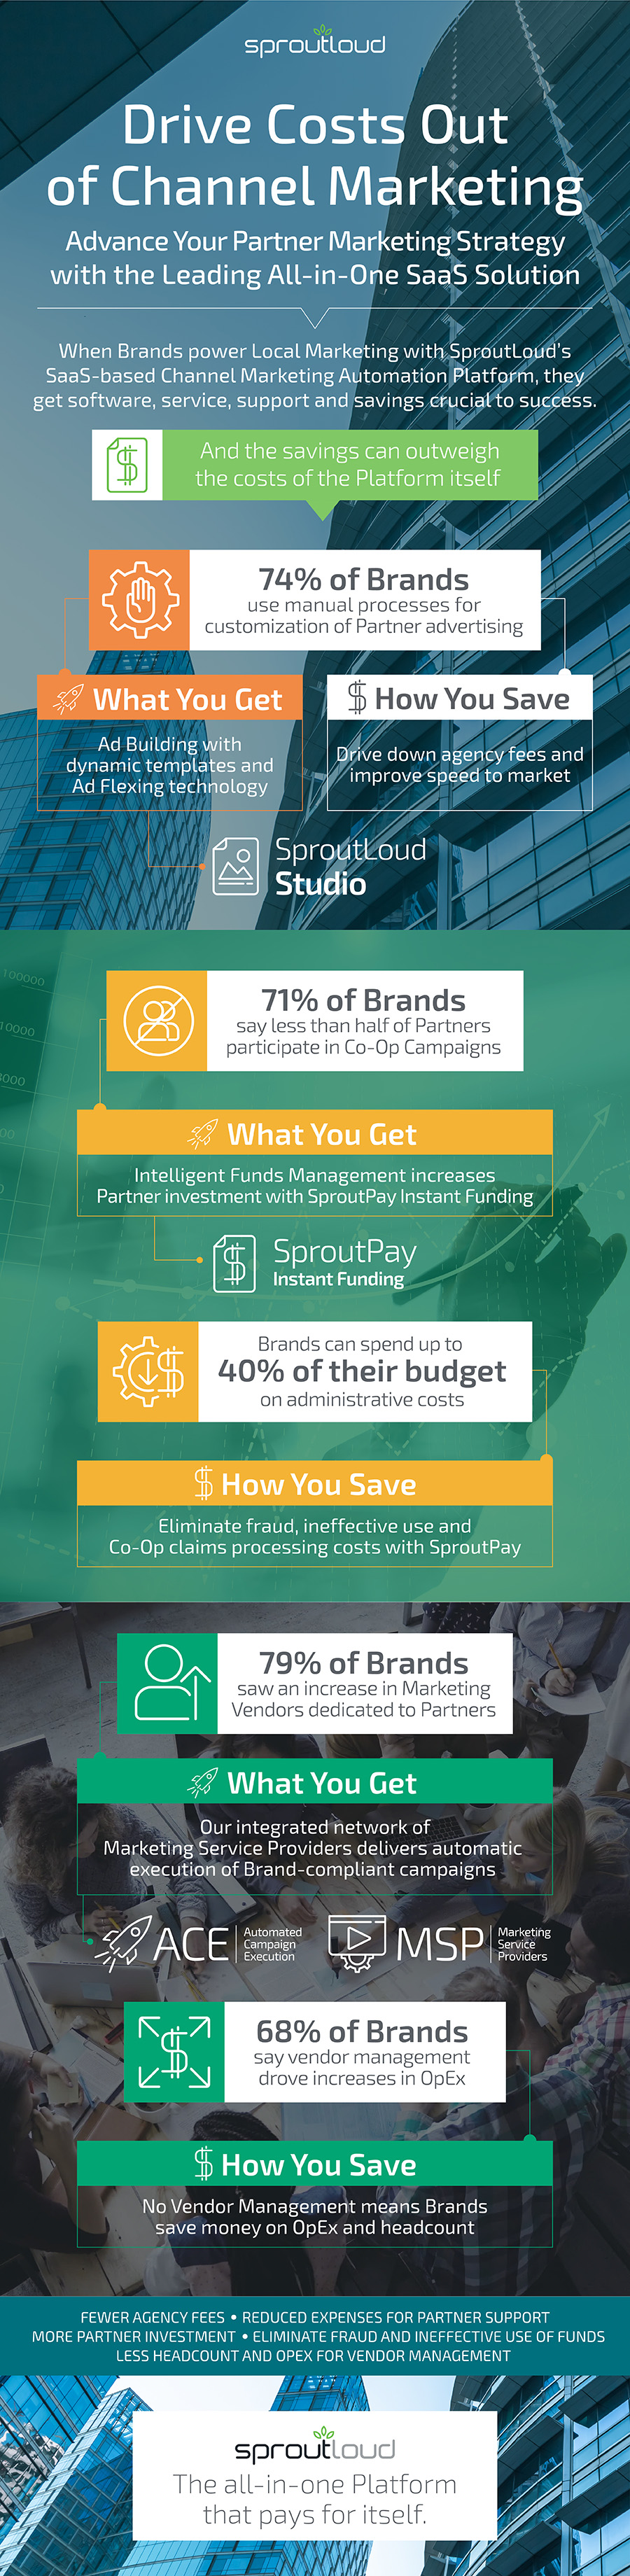 Infographic - Drive Costs Out of Channel Marketing